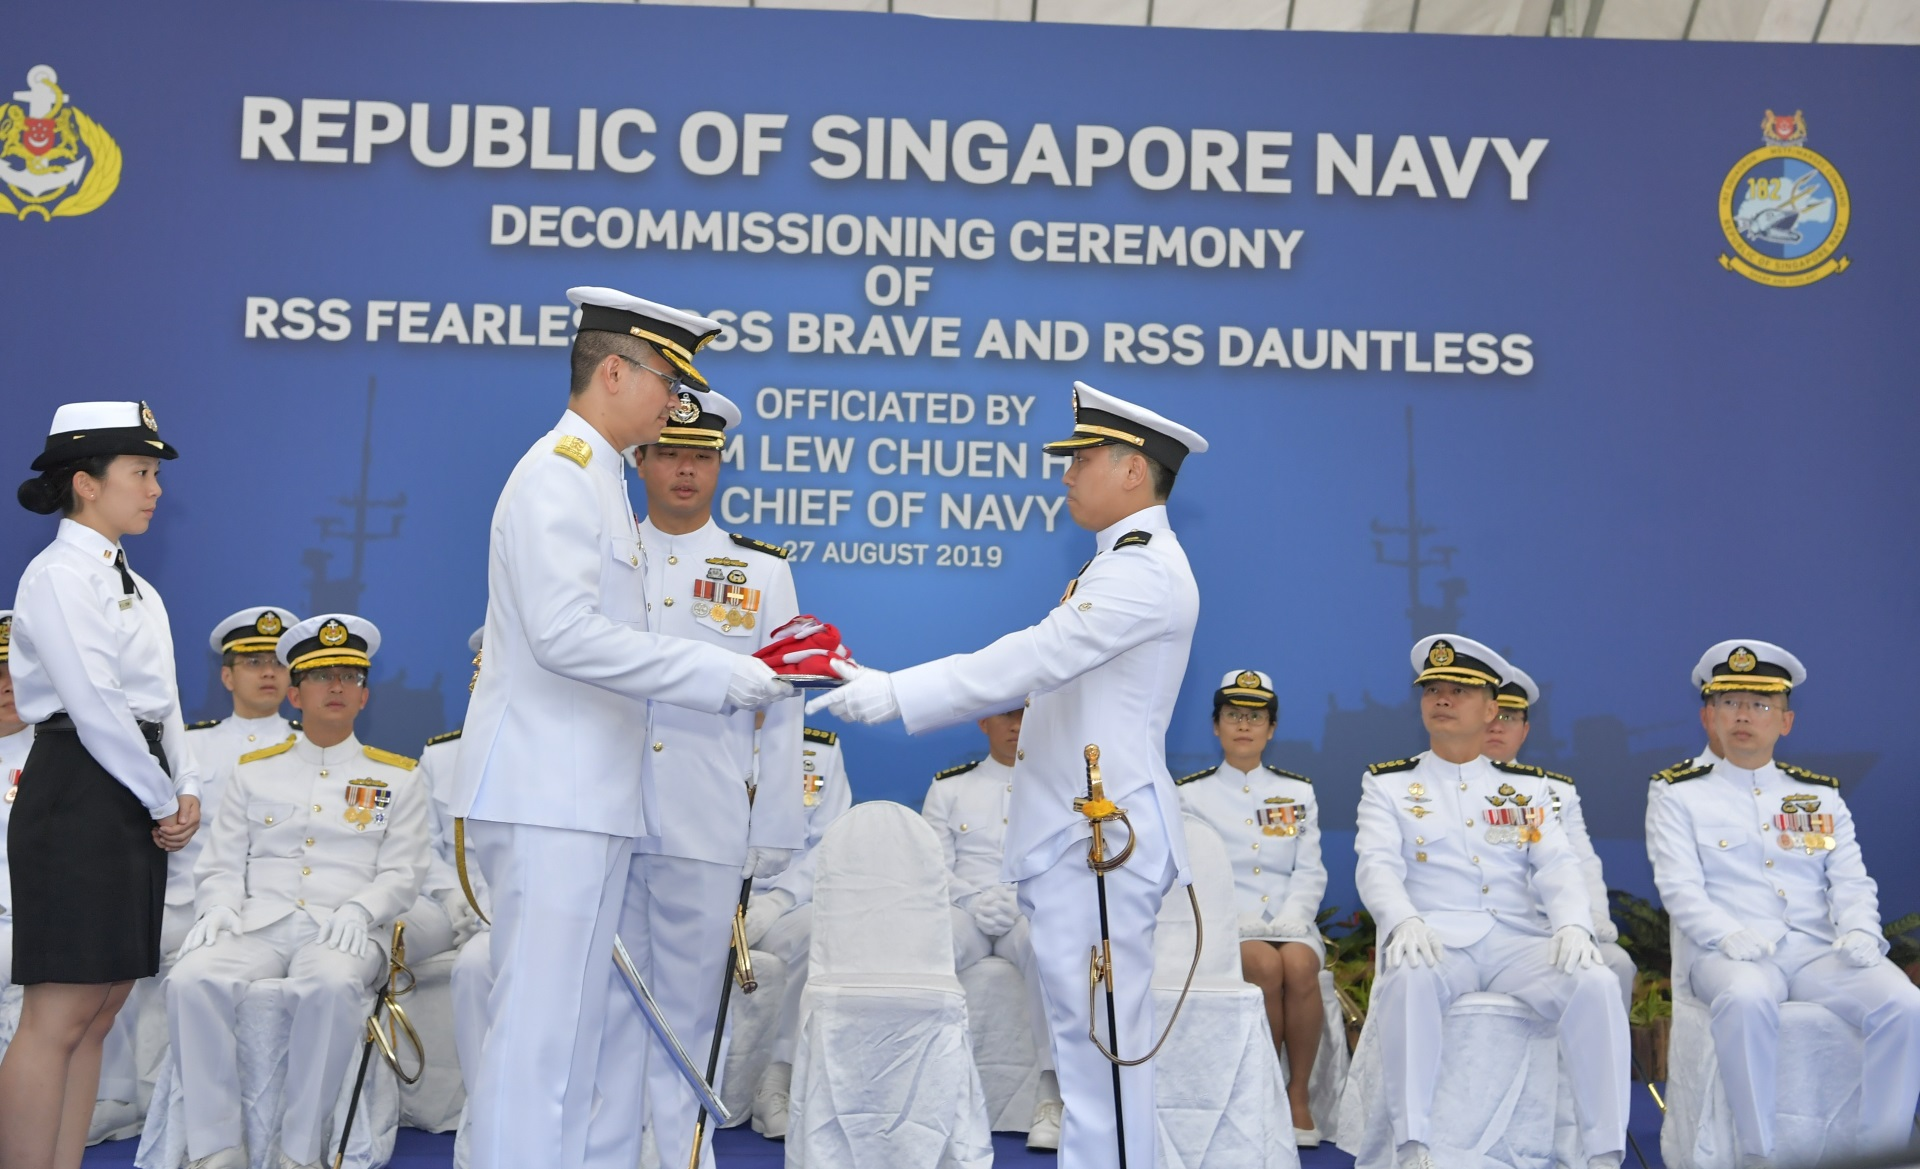 Commanding Officer RSS Fearless, Major Sin Zhenrui presenting RSS Fearless's jack, ensign and commissioning pennant to Chief of Navy Rear-Admiral Lew Chuen Hong (front, left) at the decommissioning ceremony.